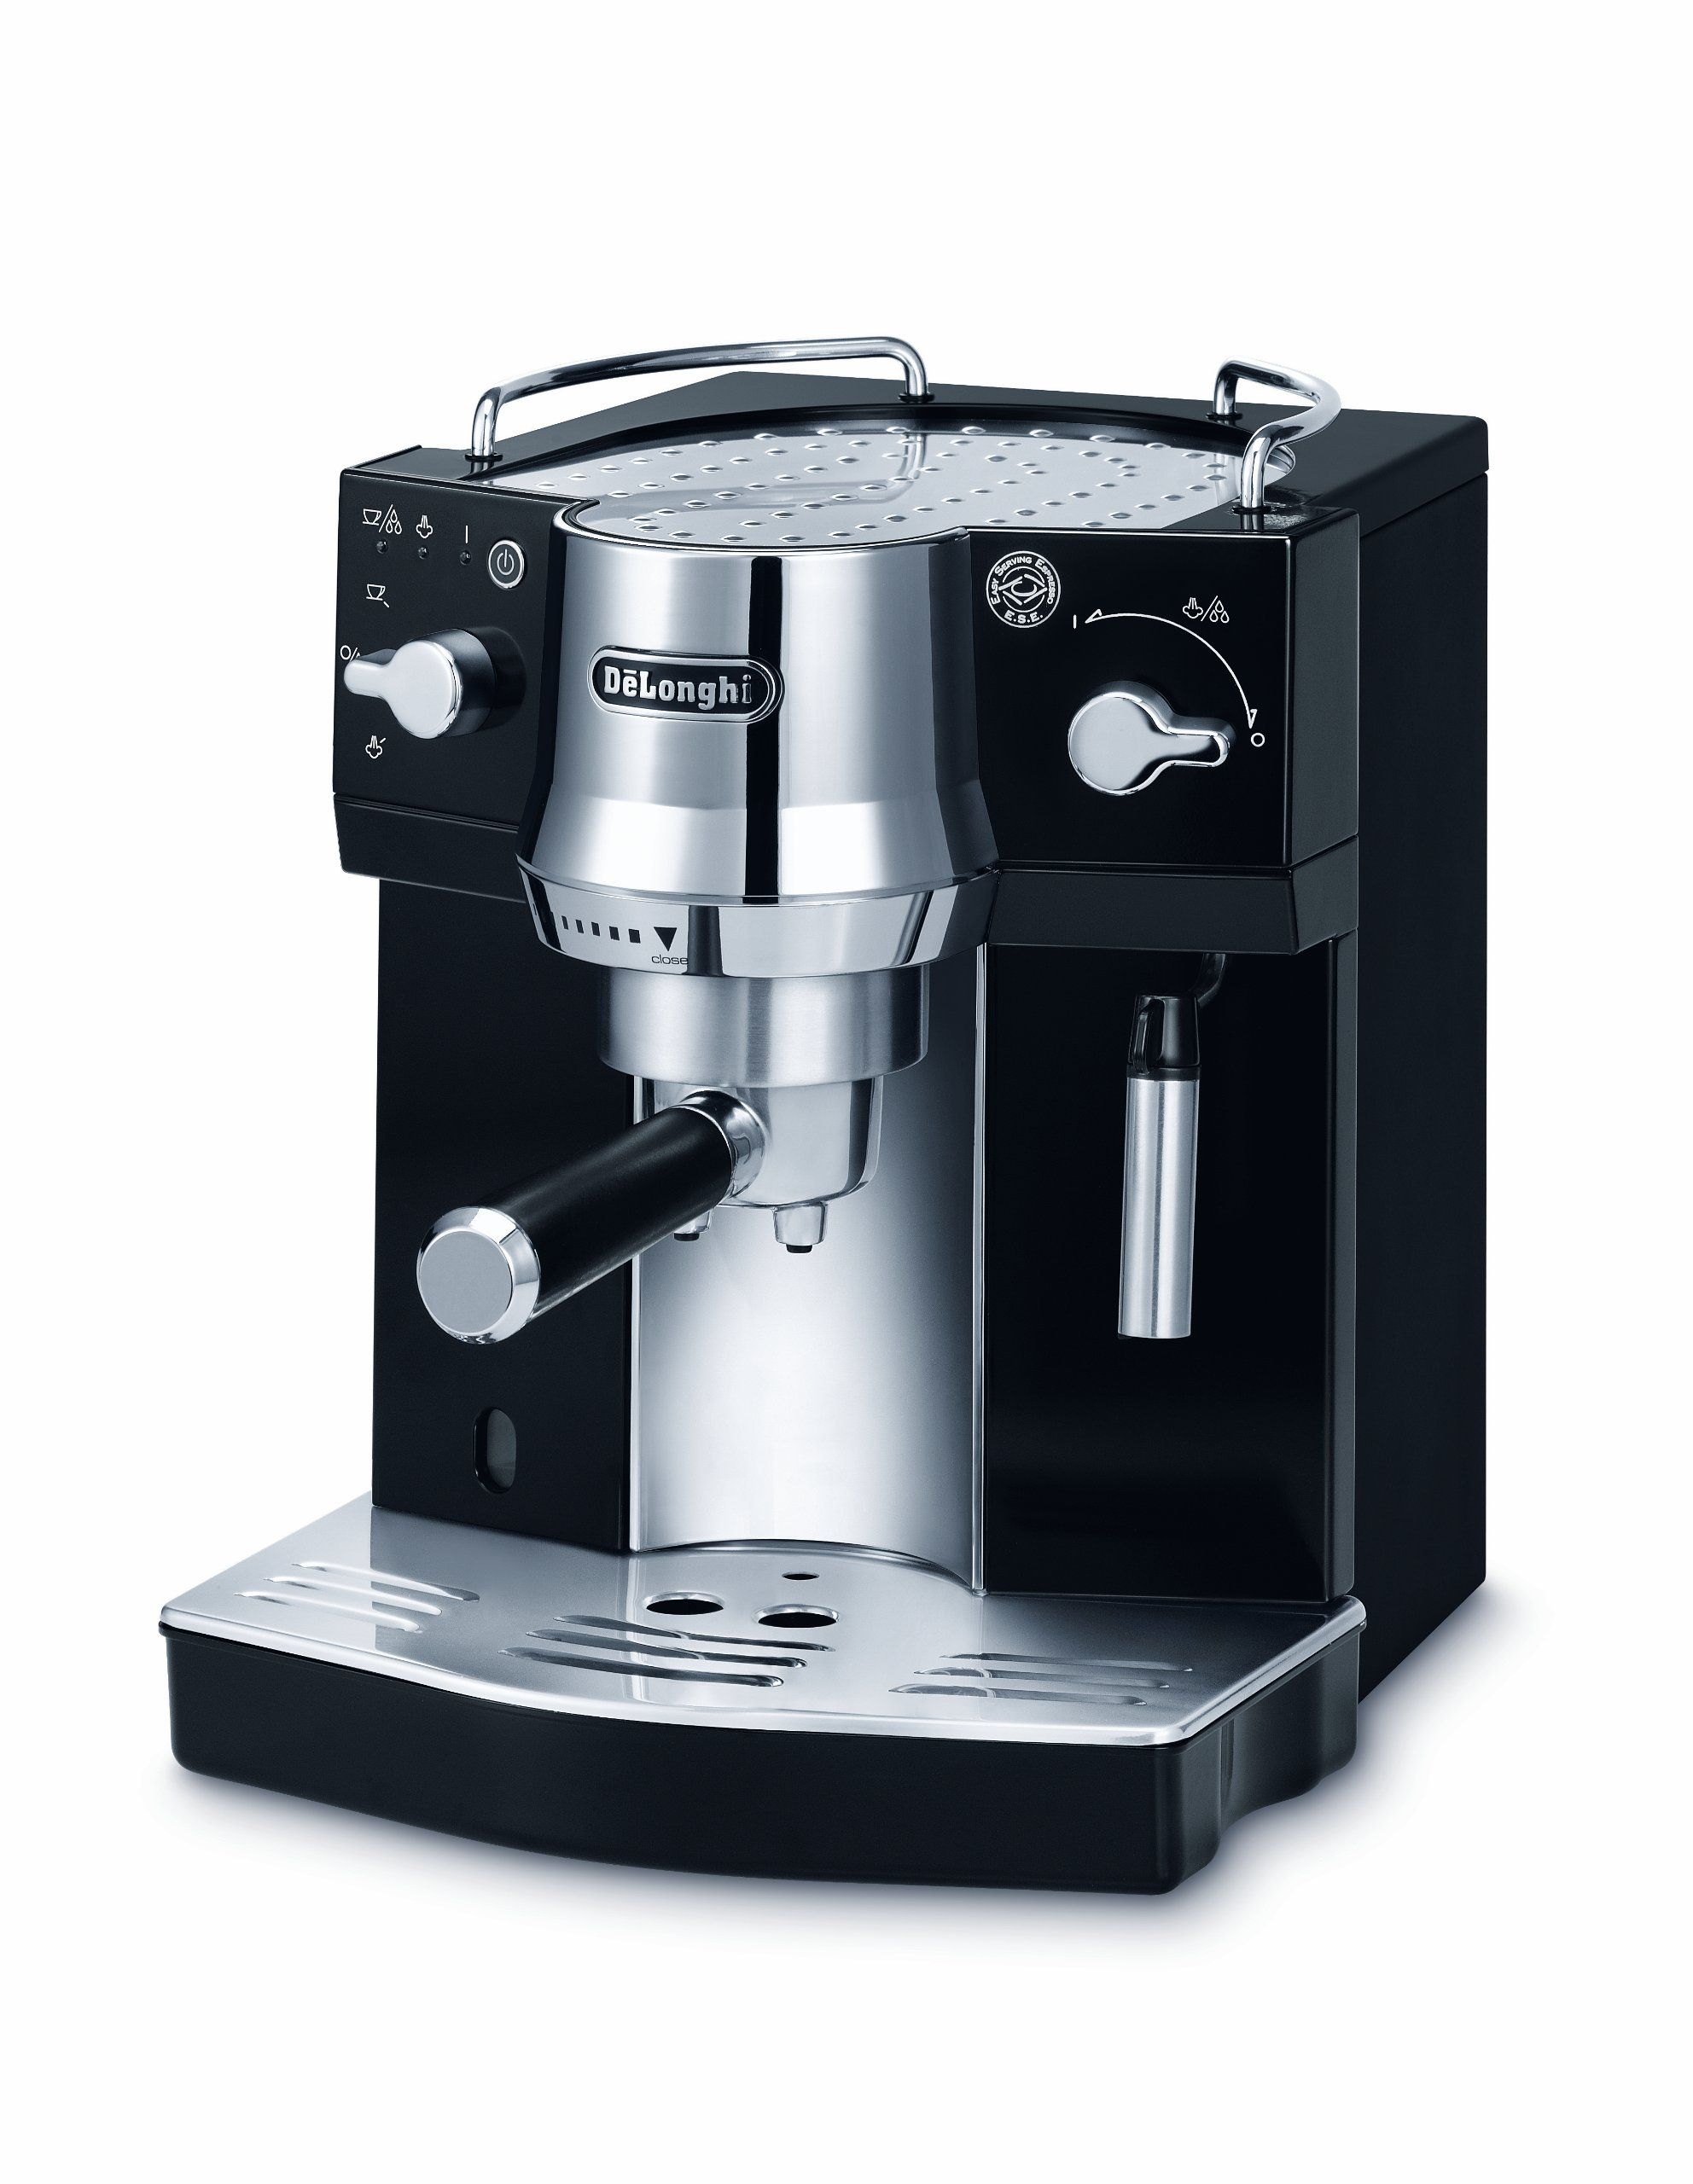 Delonghi Ec820 Pump Espresso Coffee Machine 220 Volts Not For Usa Kahve